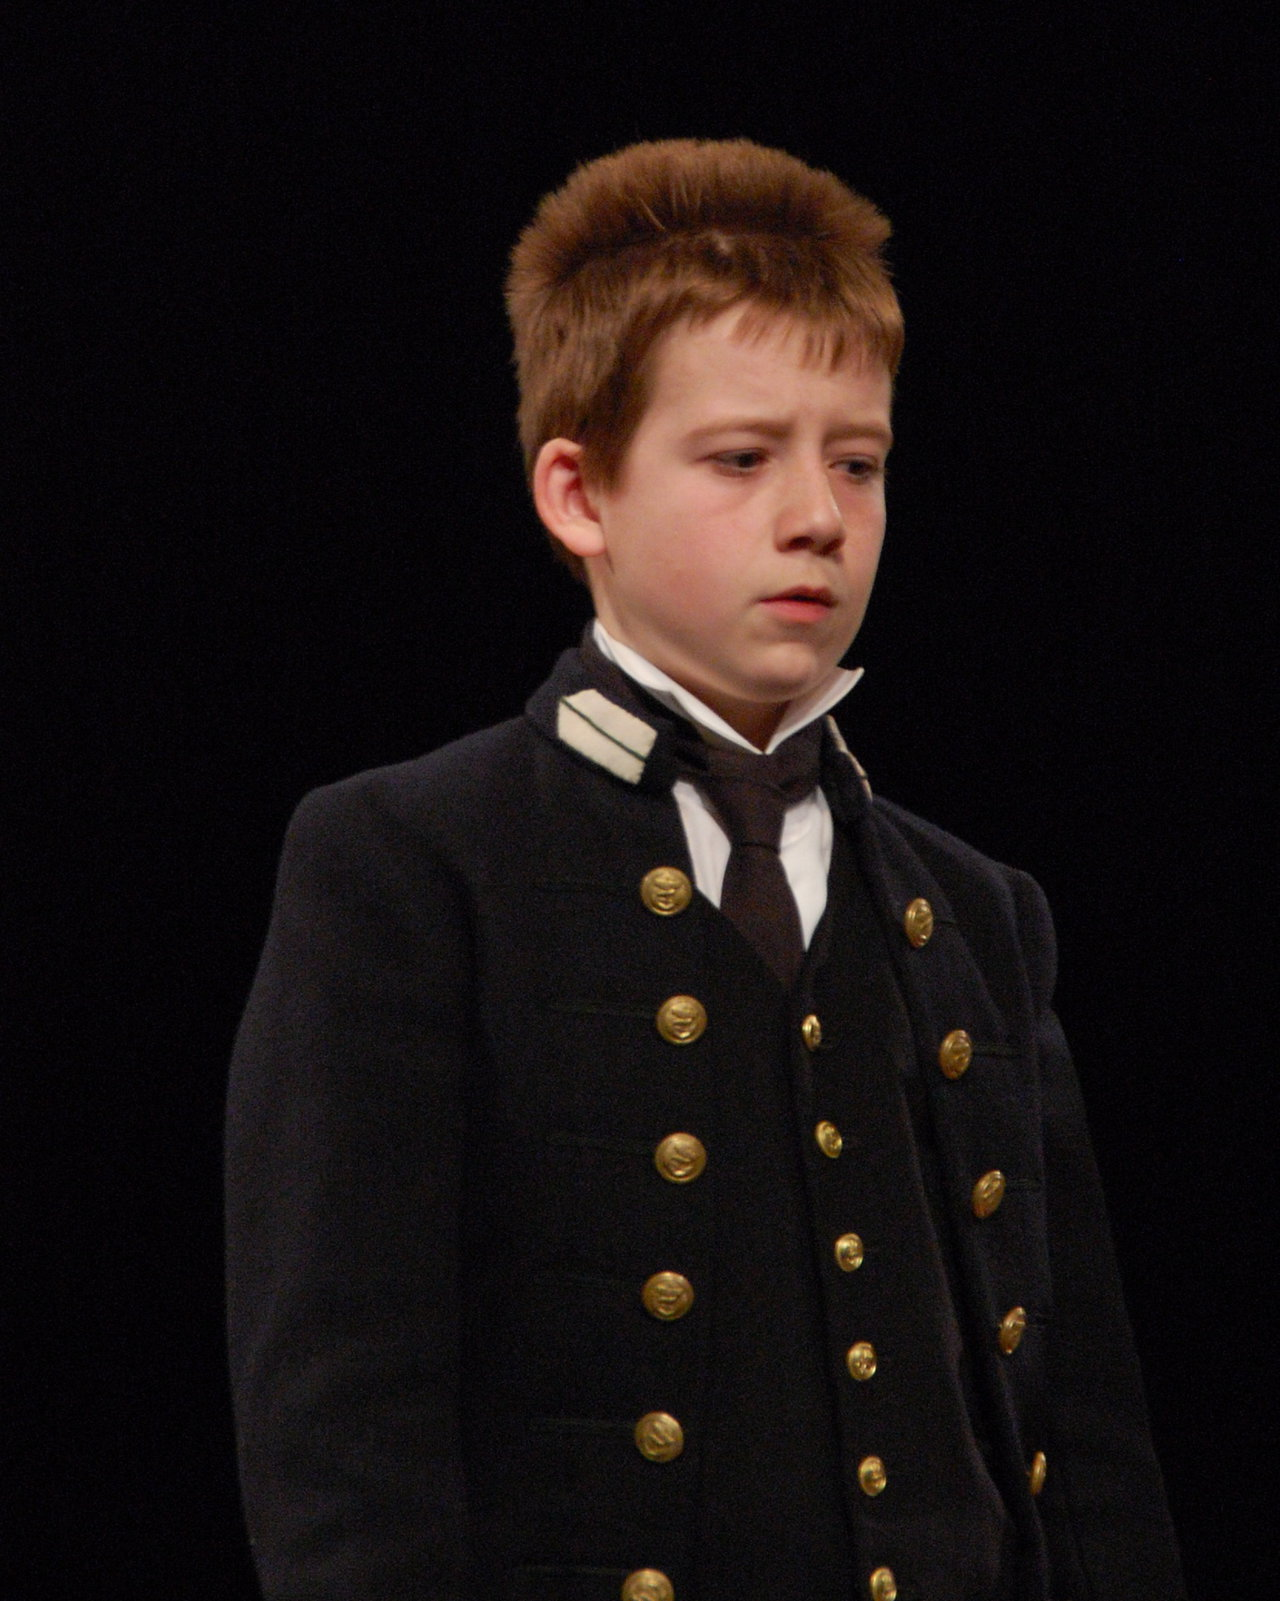 an analysis of winslow boy by terrance rattigan Terence rattigan, a brilliant playwright with the ability to portray repressed emotions, wrote the winslow boy about a respectable, middle-class family in the years leading up to the first world war.